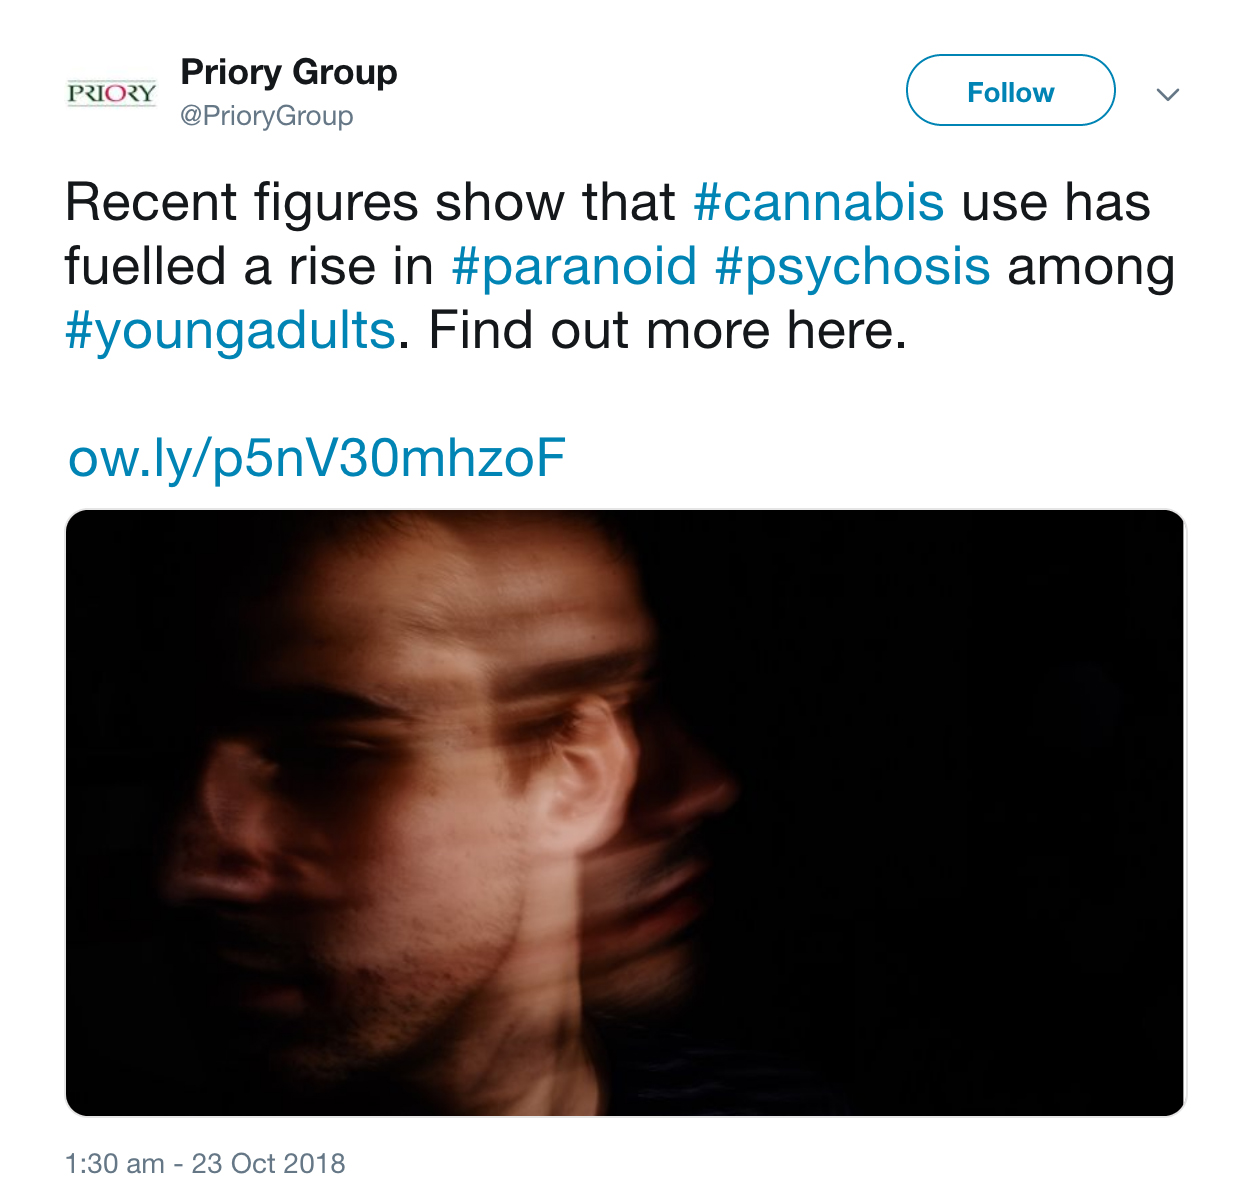 A tweet from the Priory Group talking about psychosis in young adults. The Tweet reads: Recent figures show cannabis use has fuelled a rise in paranoid psychosis among young adults.